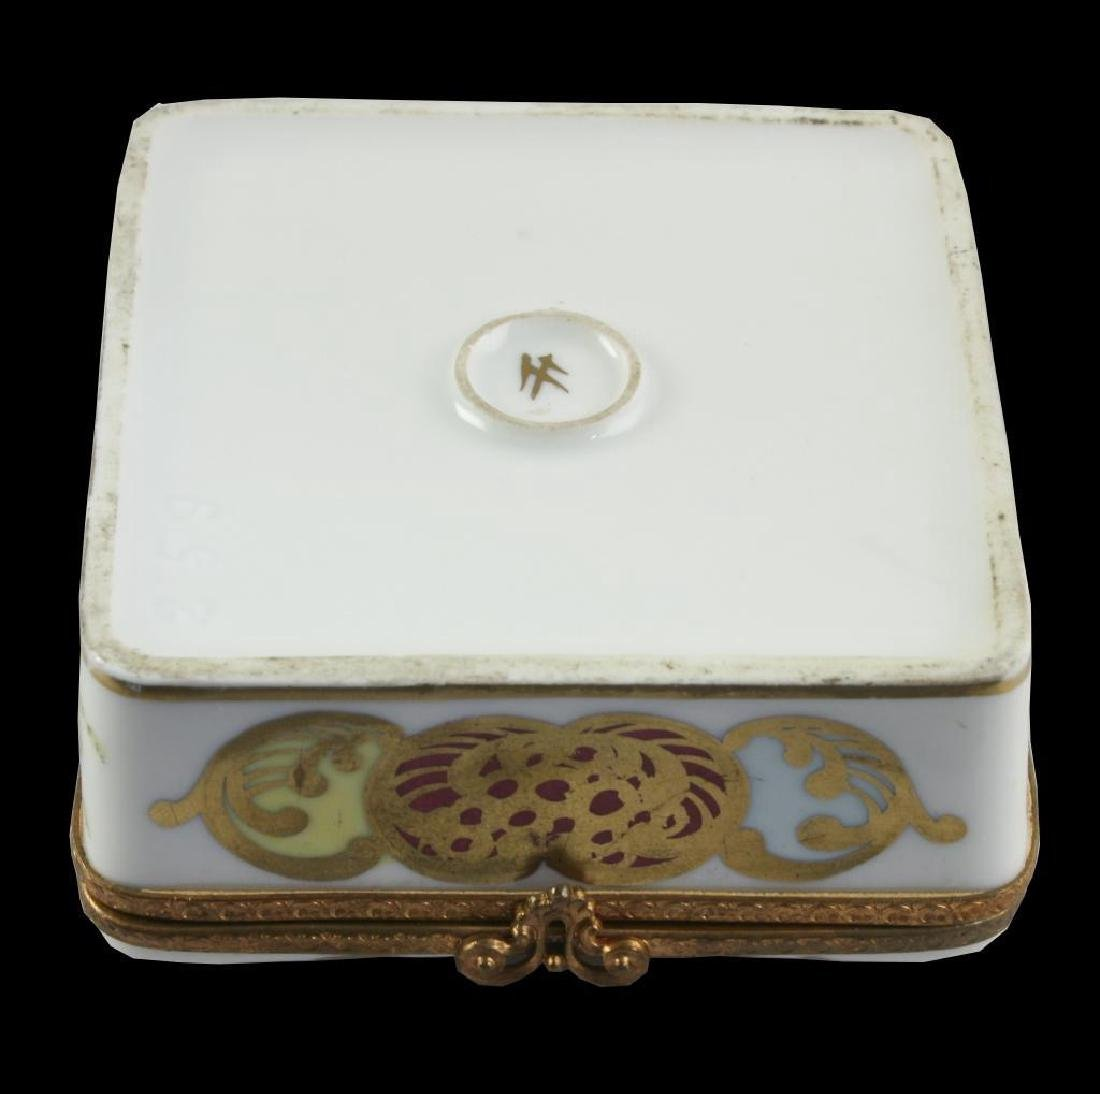 French Porcelain Floral Trinket Jewel Box - 3